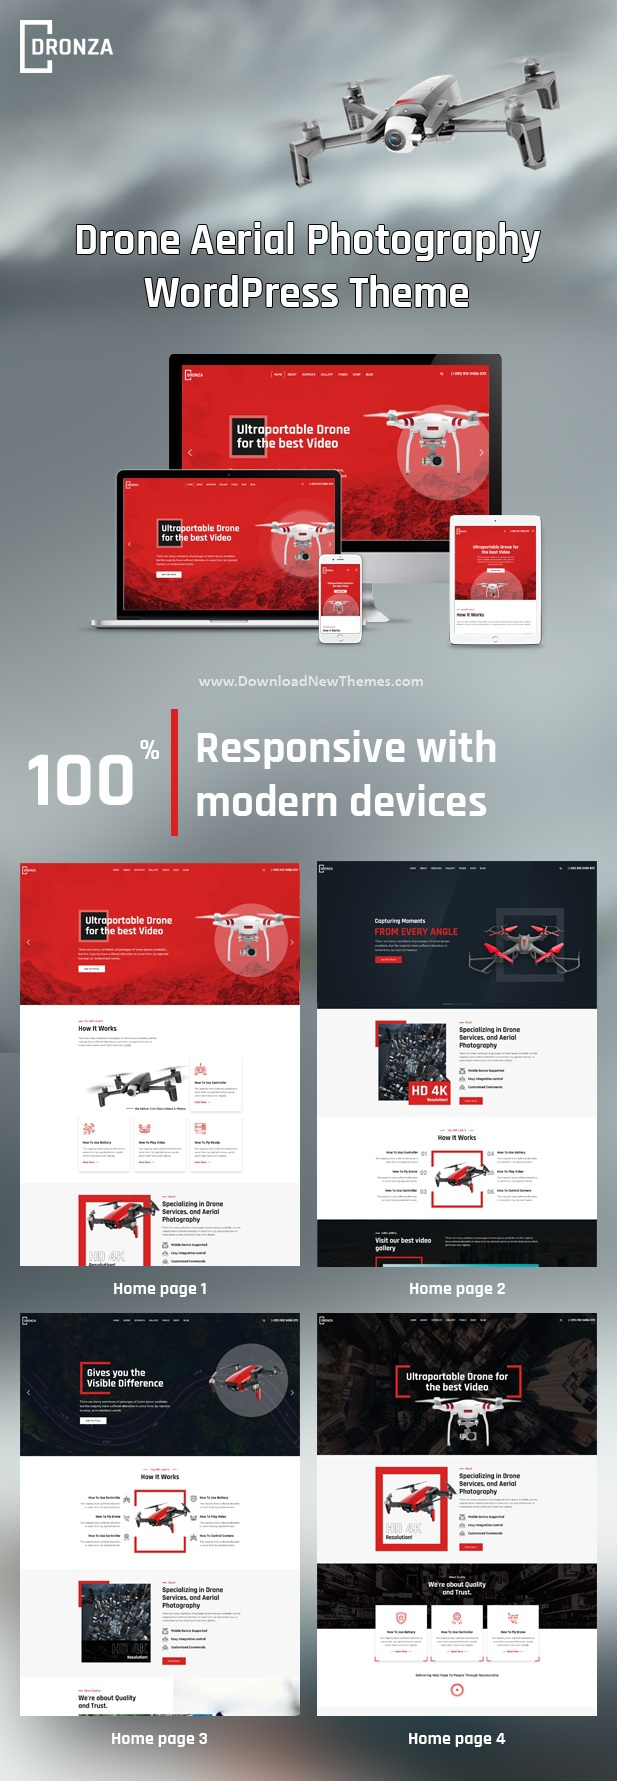 Drone Aerial Photography WordPress Theme